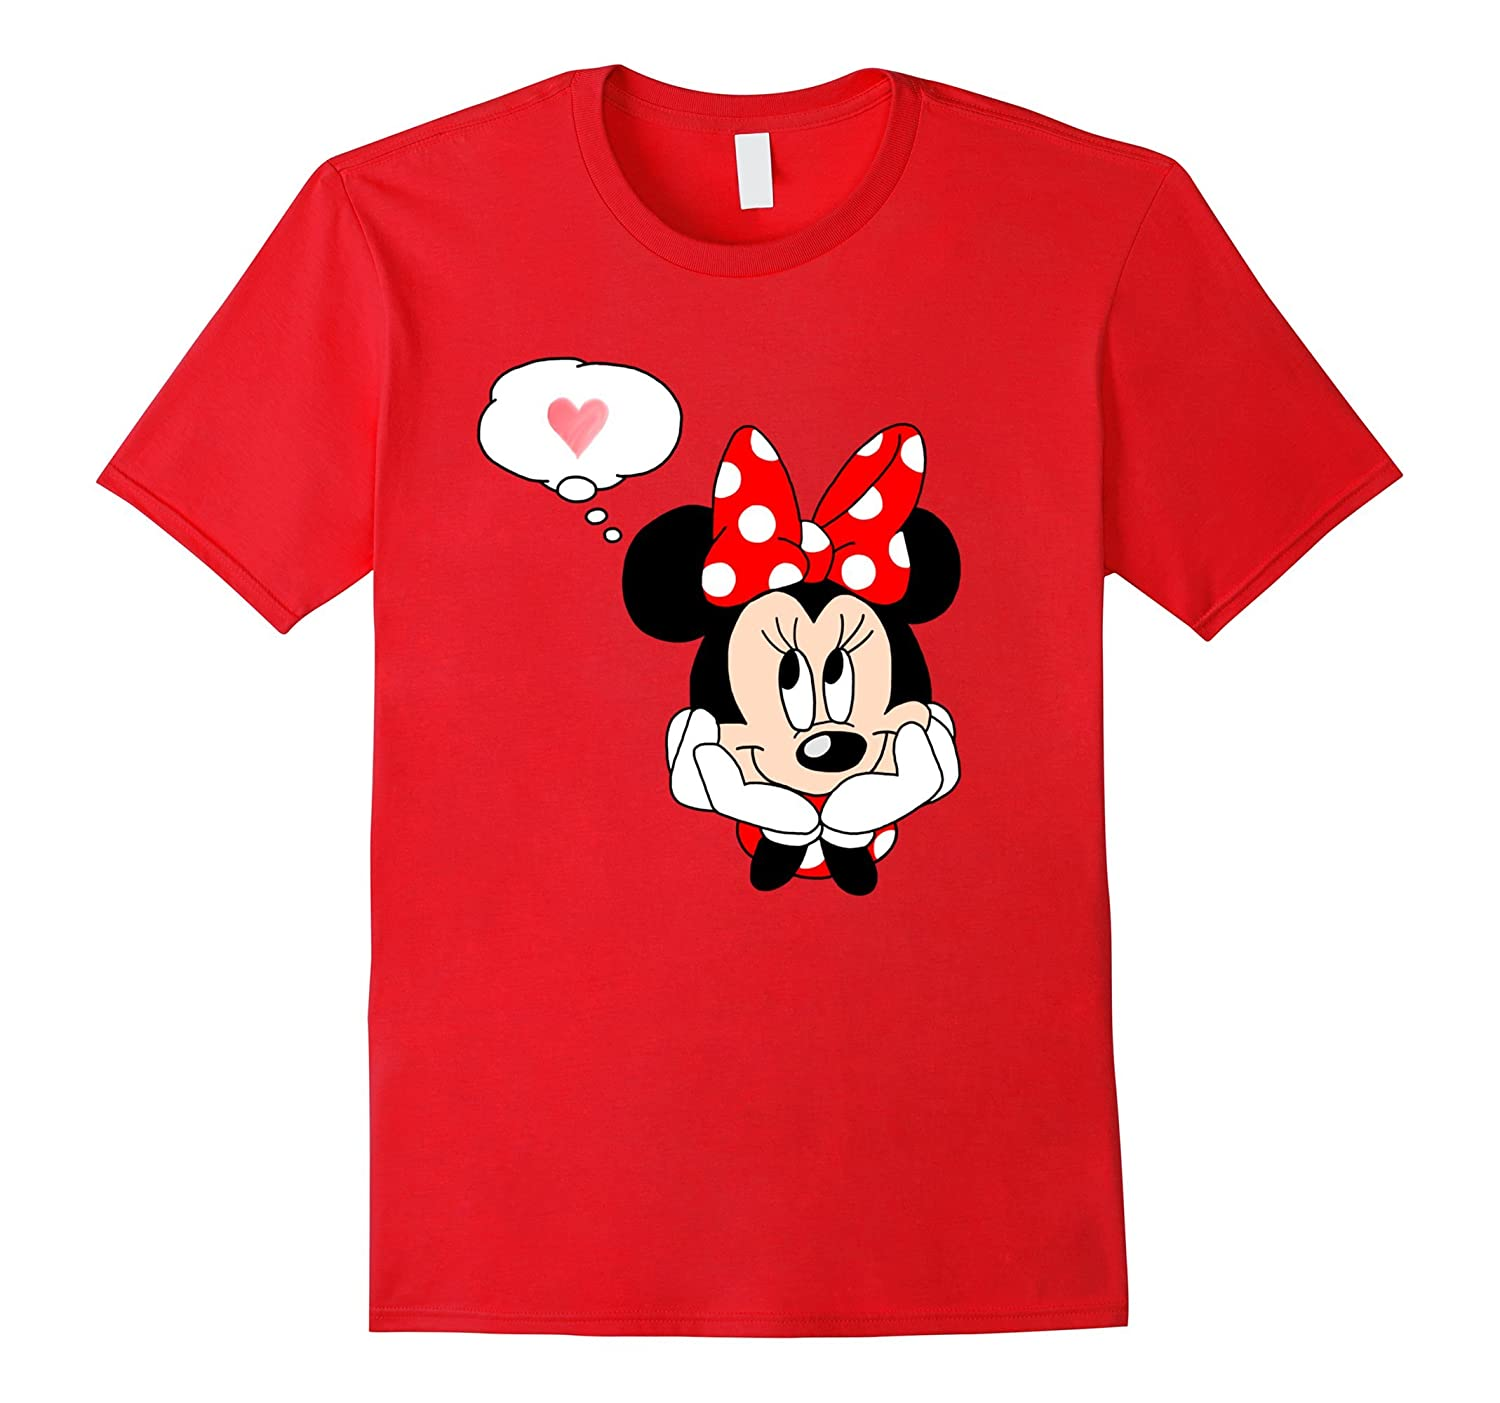 Minnie Mouse Love Shirt Womens T Shirt Fashion Bn Banazatee